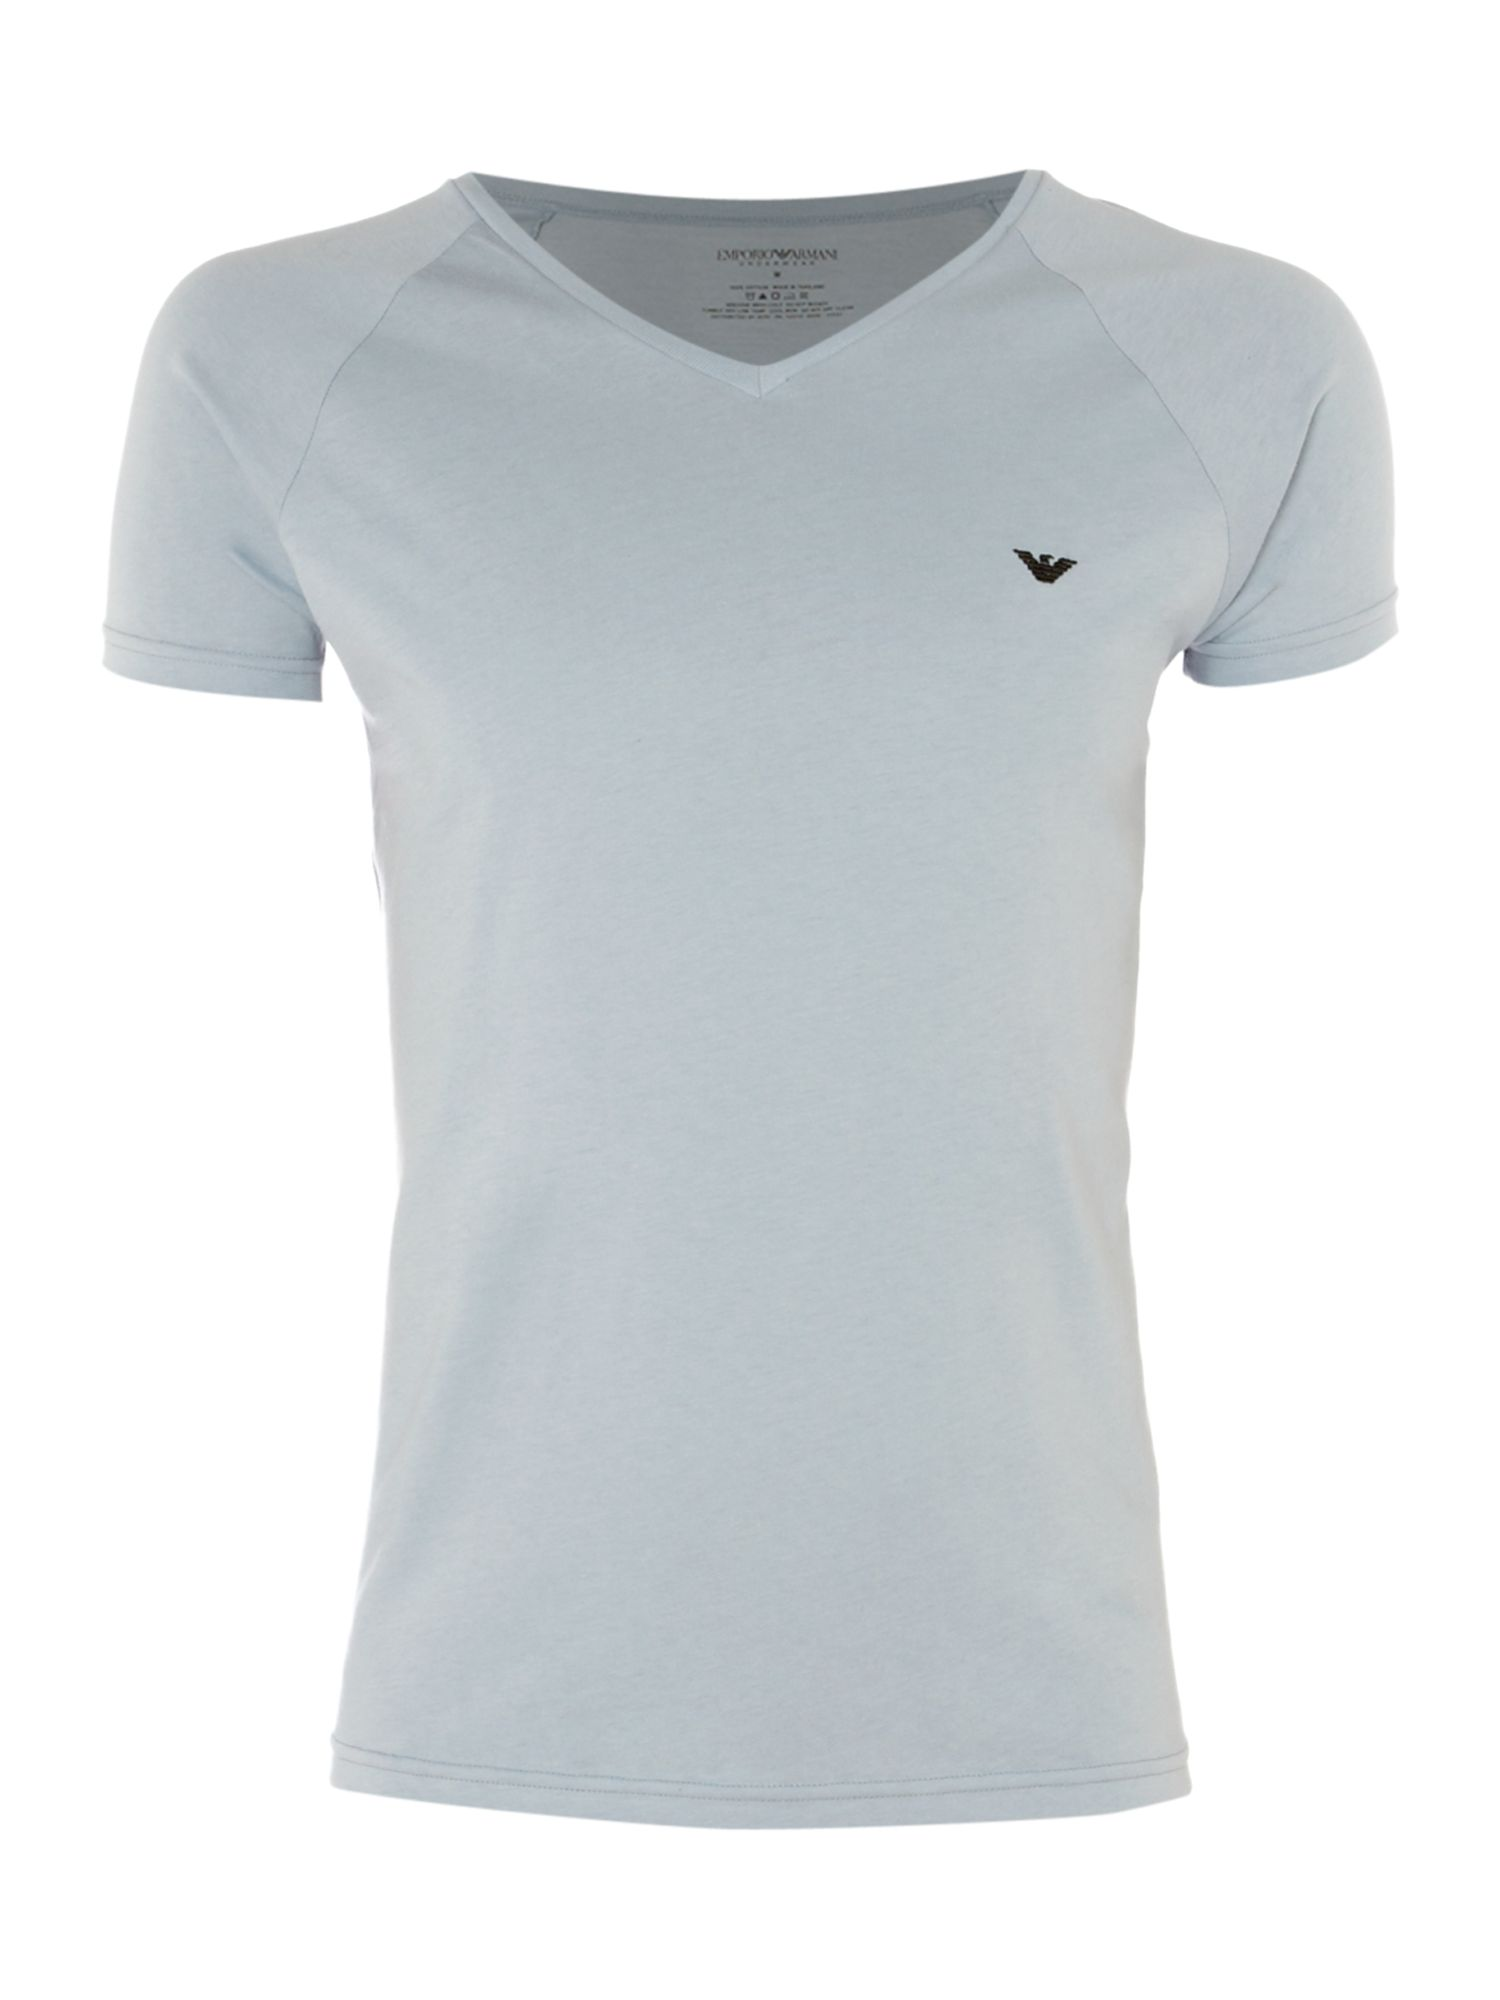 Emporio Armani Lounge T-shirt with logo detail - Blue product image